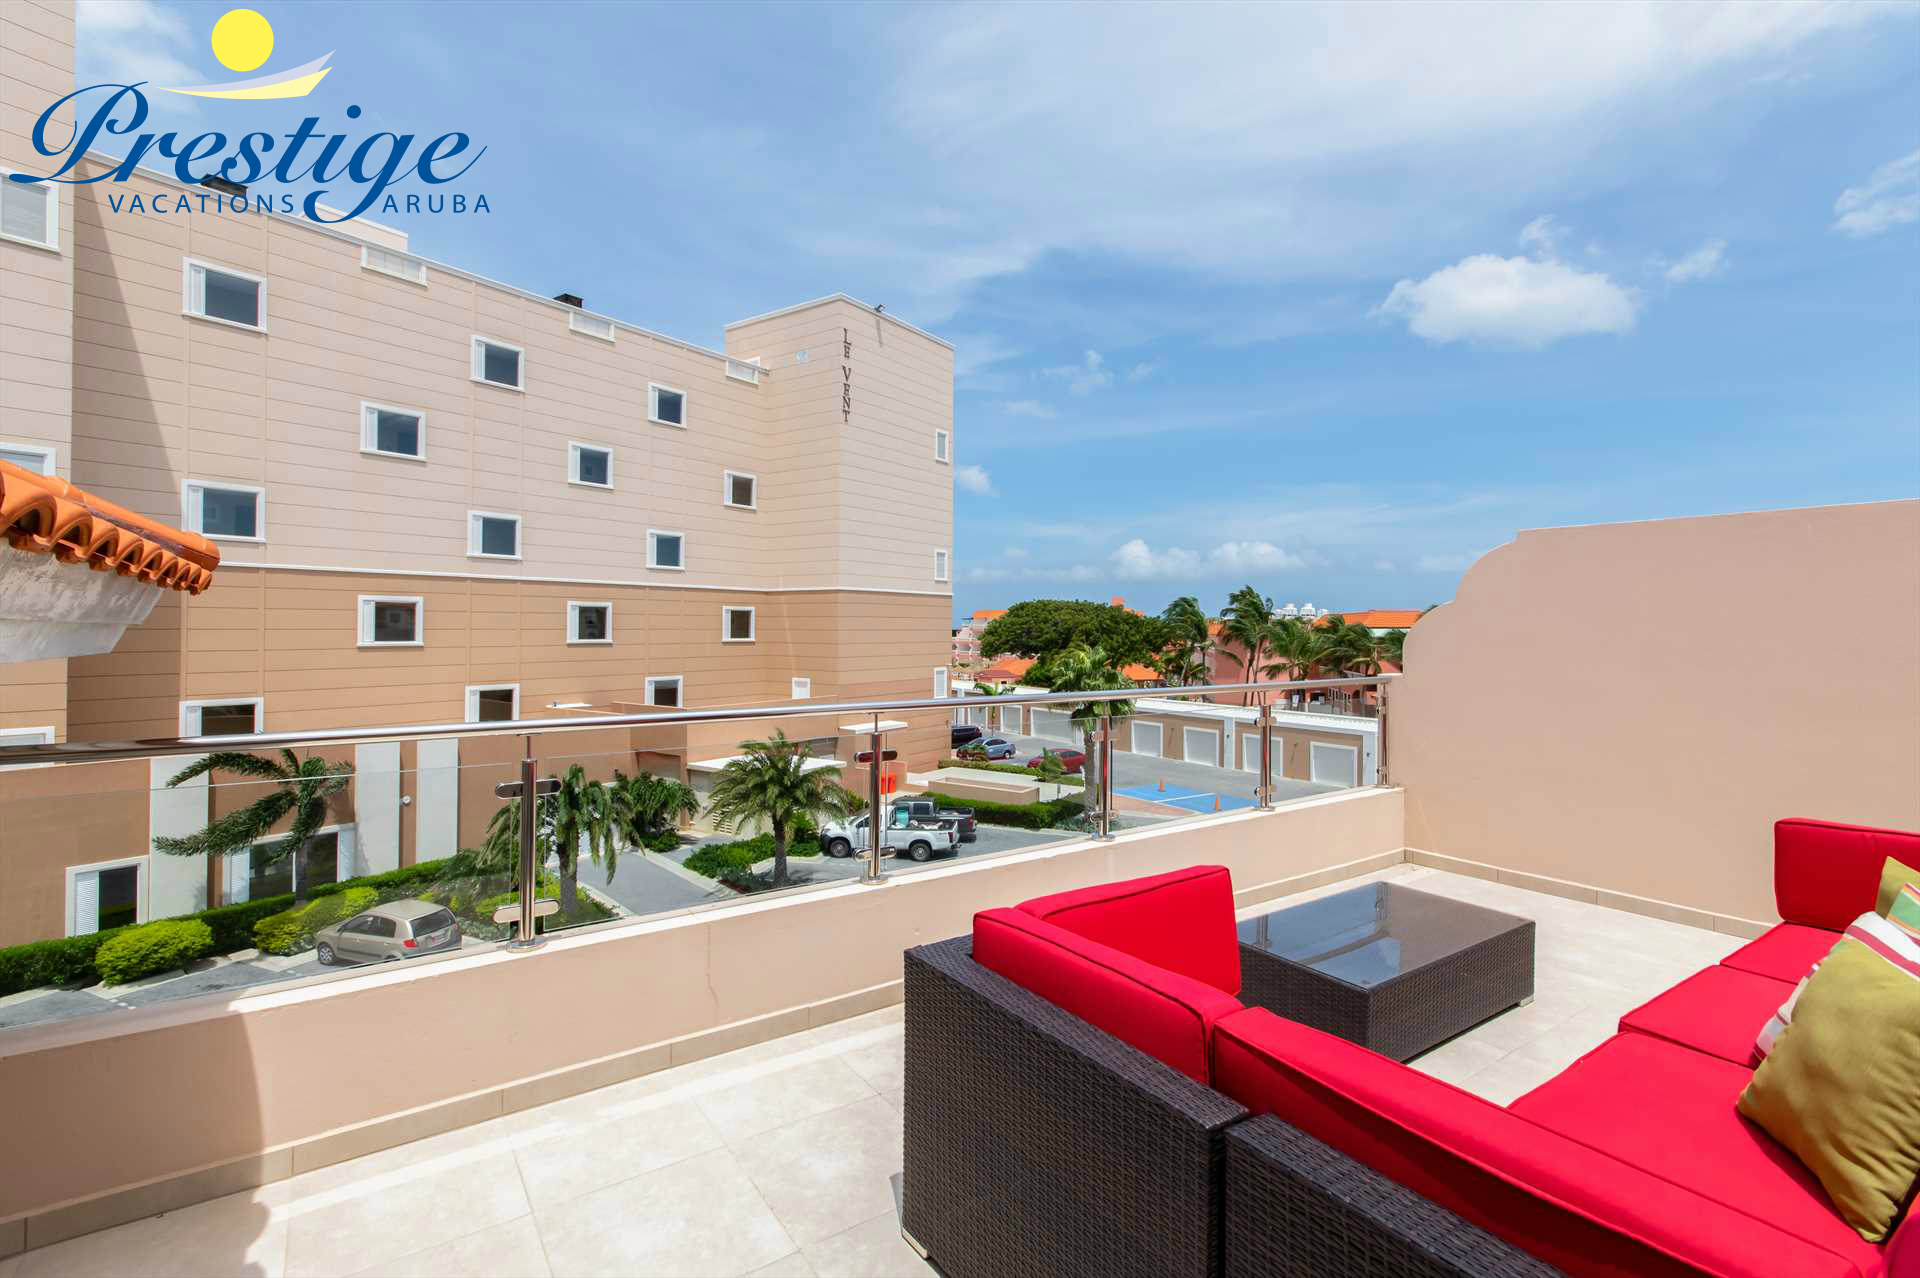 Private rooftop terrace with an outdoor seating area to enjoy Aruba's summer weather